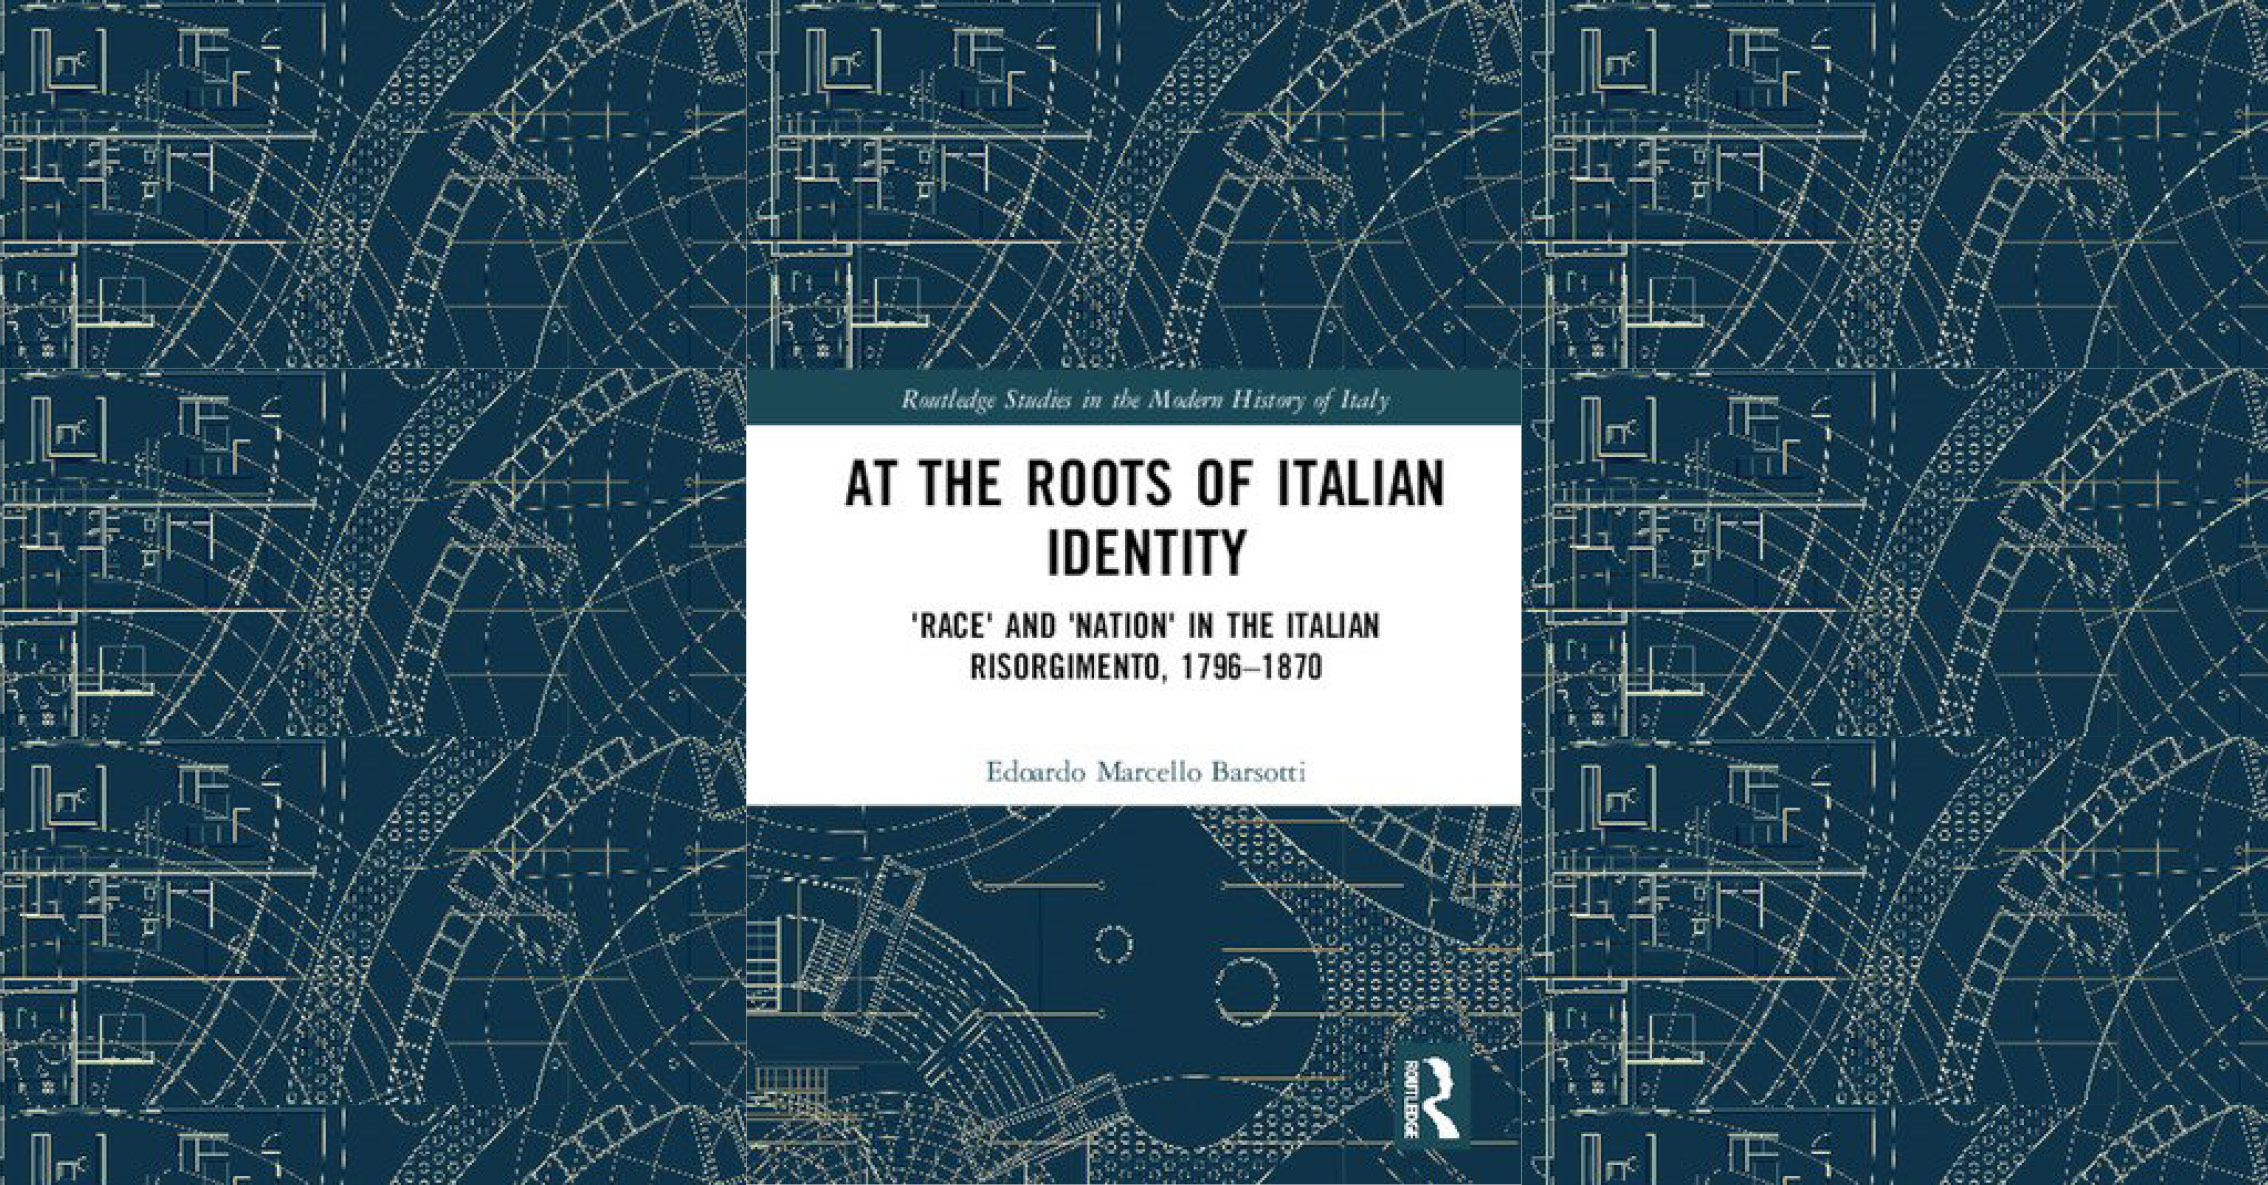 At the Roots of Italian Identity. 'Race' and 'Nation' in the Italian Risorgimento, 1796-1870 – an interview with Edoardo M. Barsotti